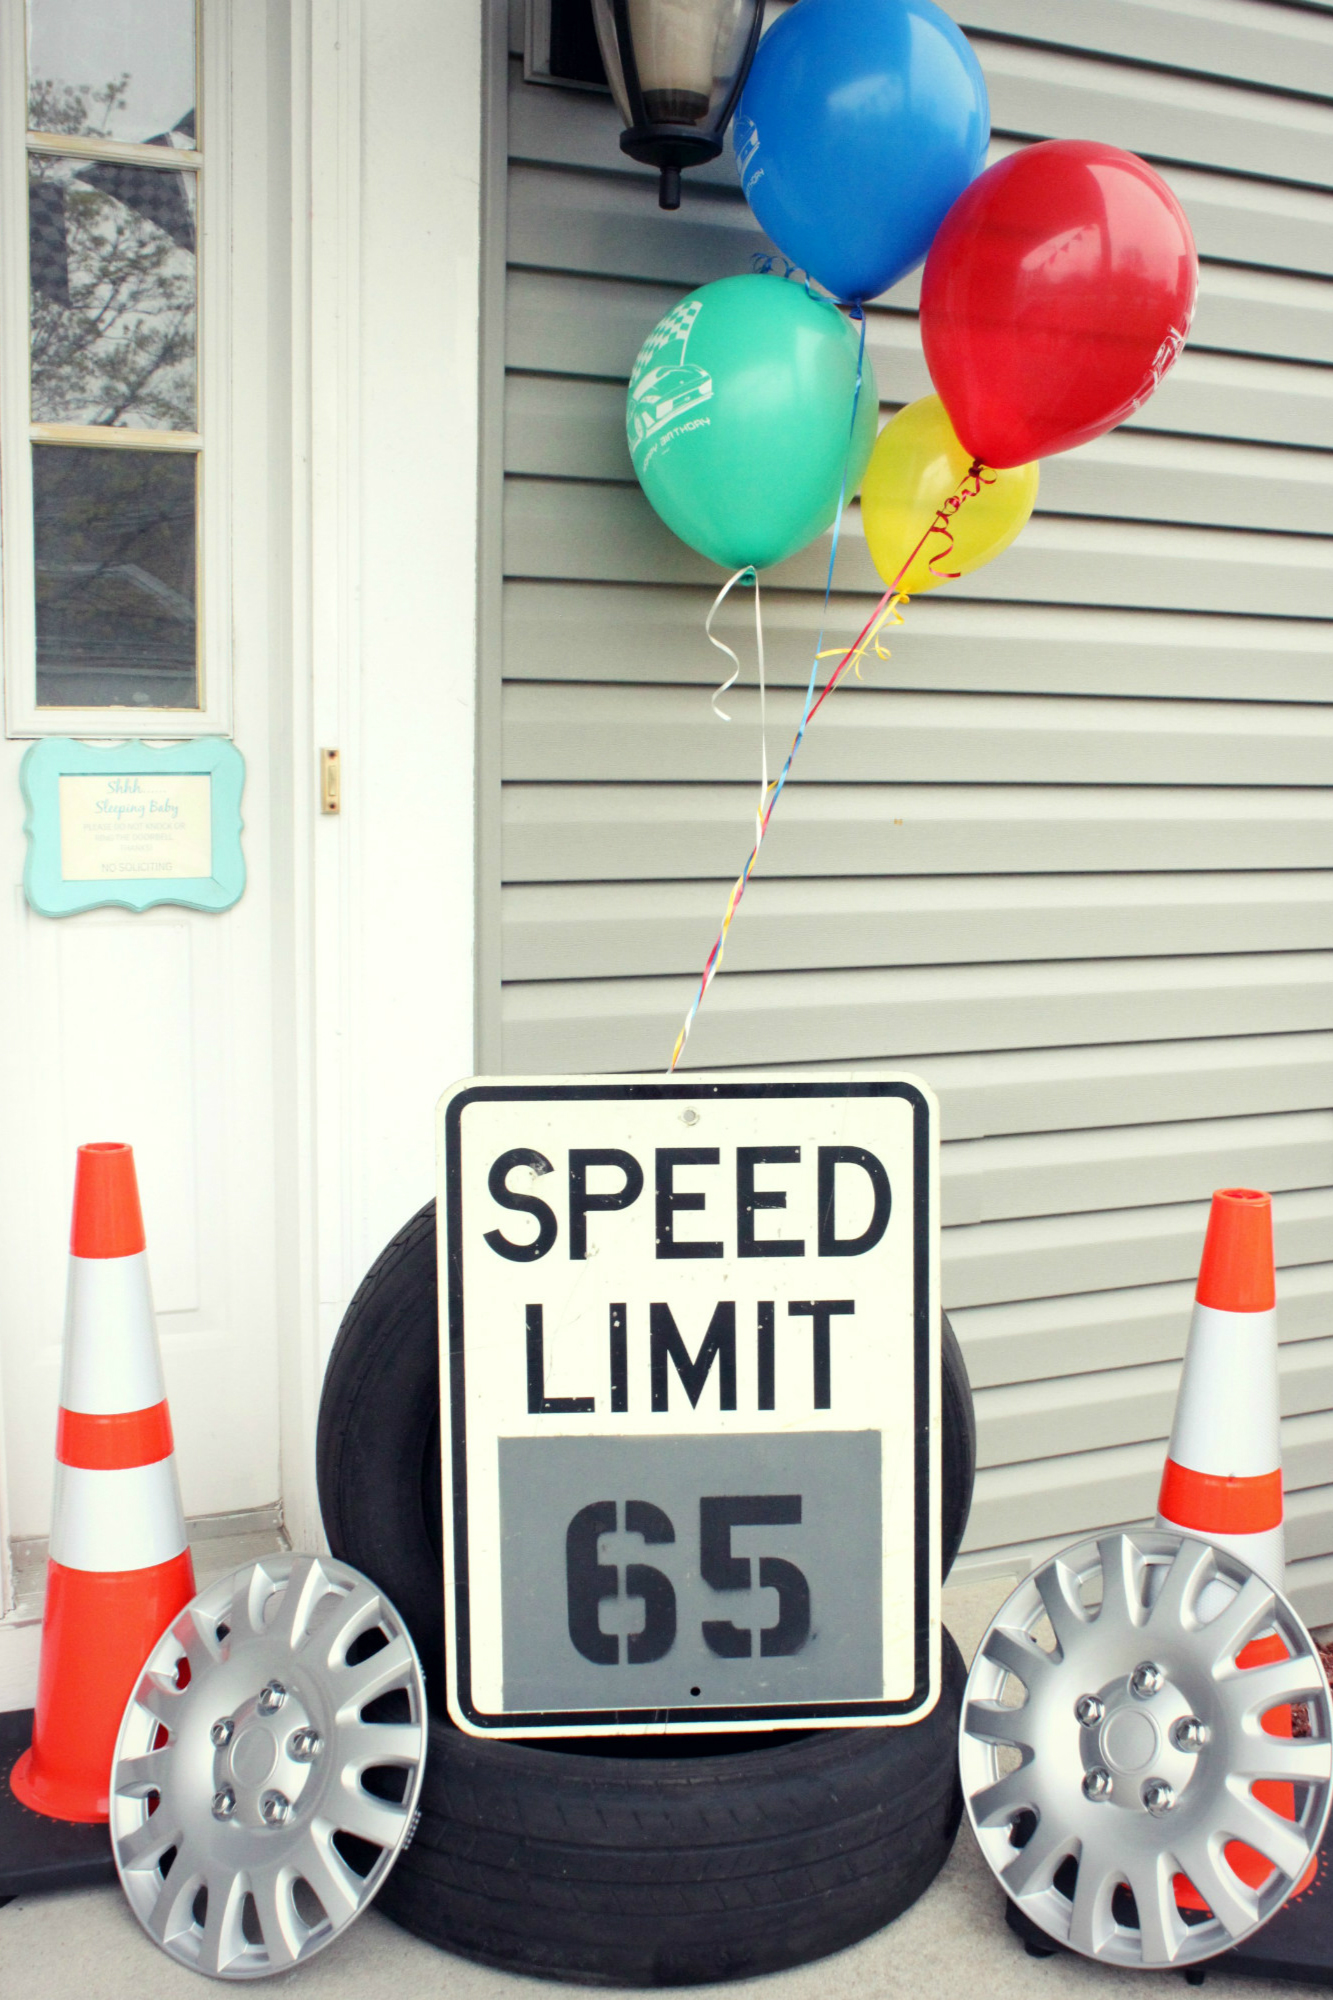 Hot Wheels Birthday Party Welcome Entrance Balloons Speed Limit Sign Tires and Cones | Black Twine | The Party Porch